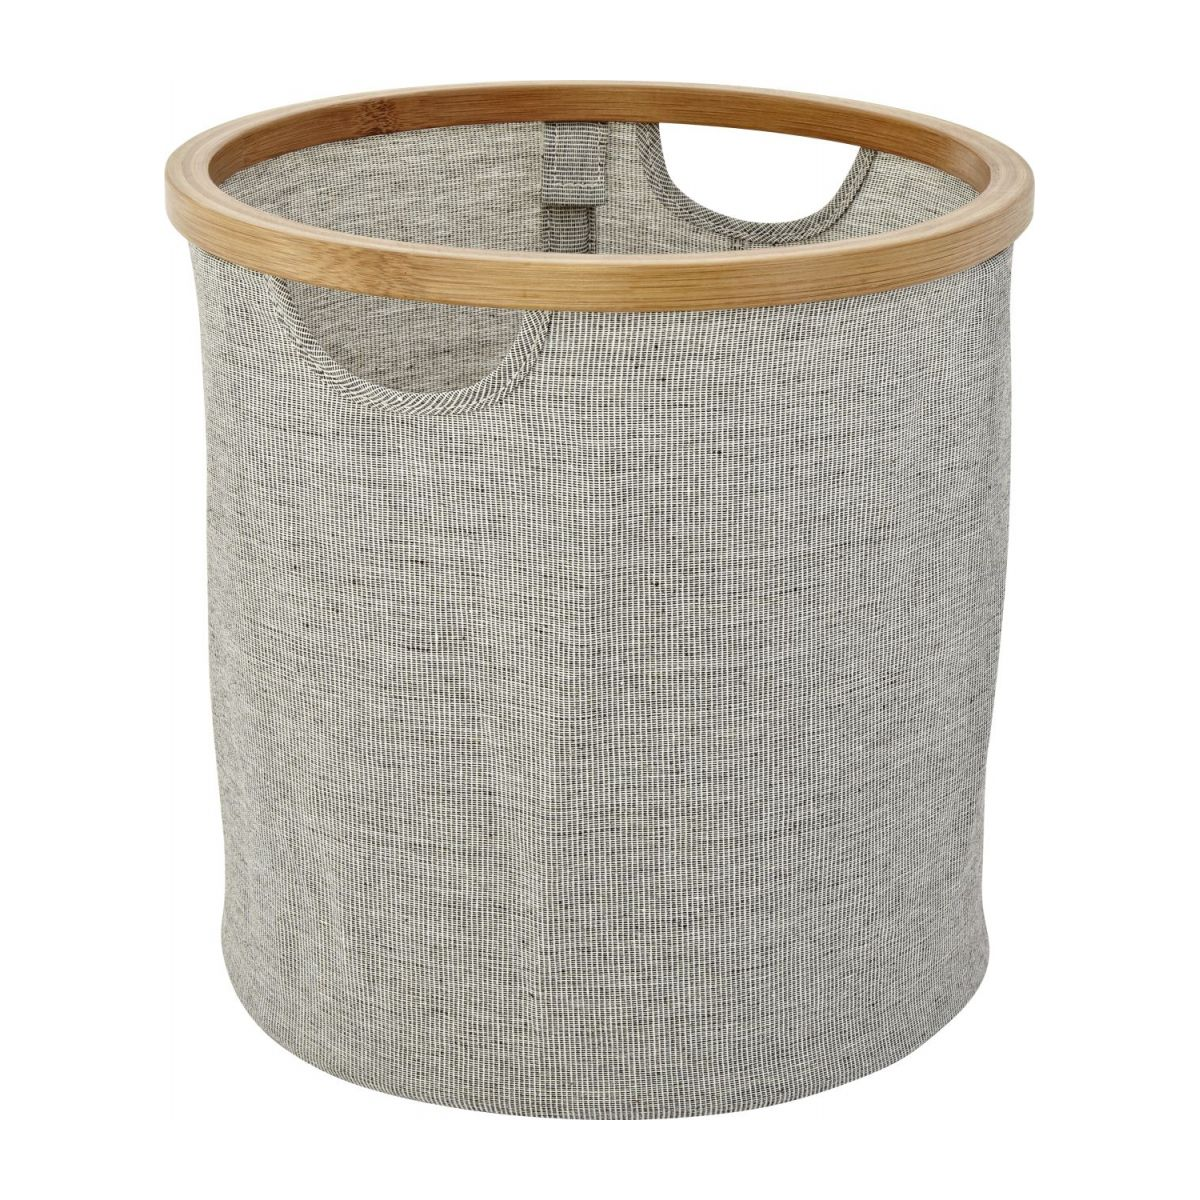 small round laundry basket n°1